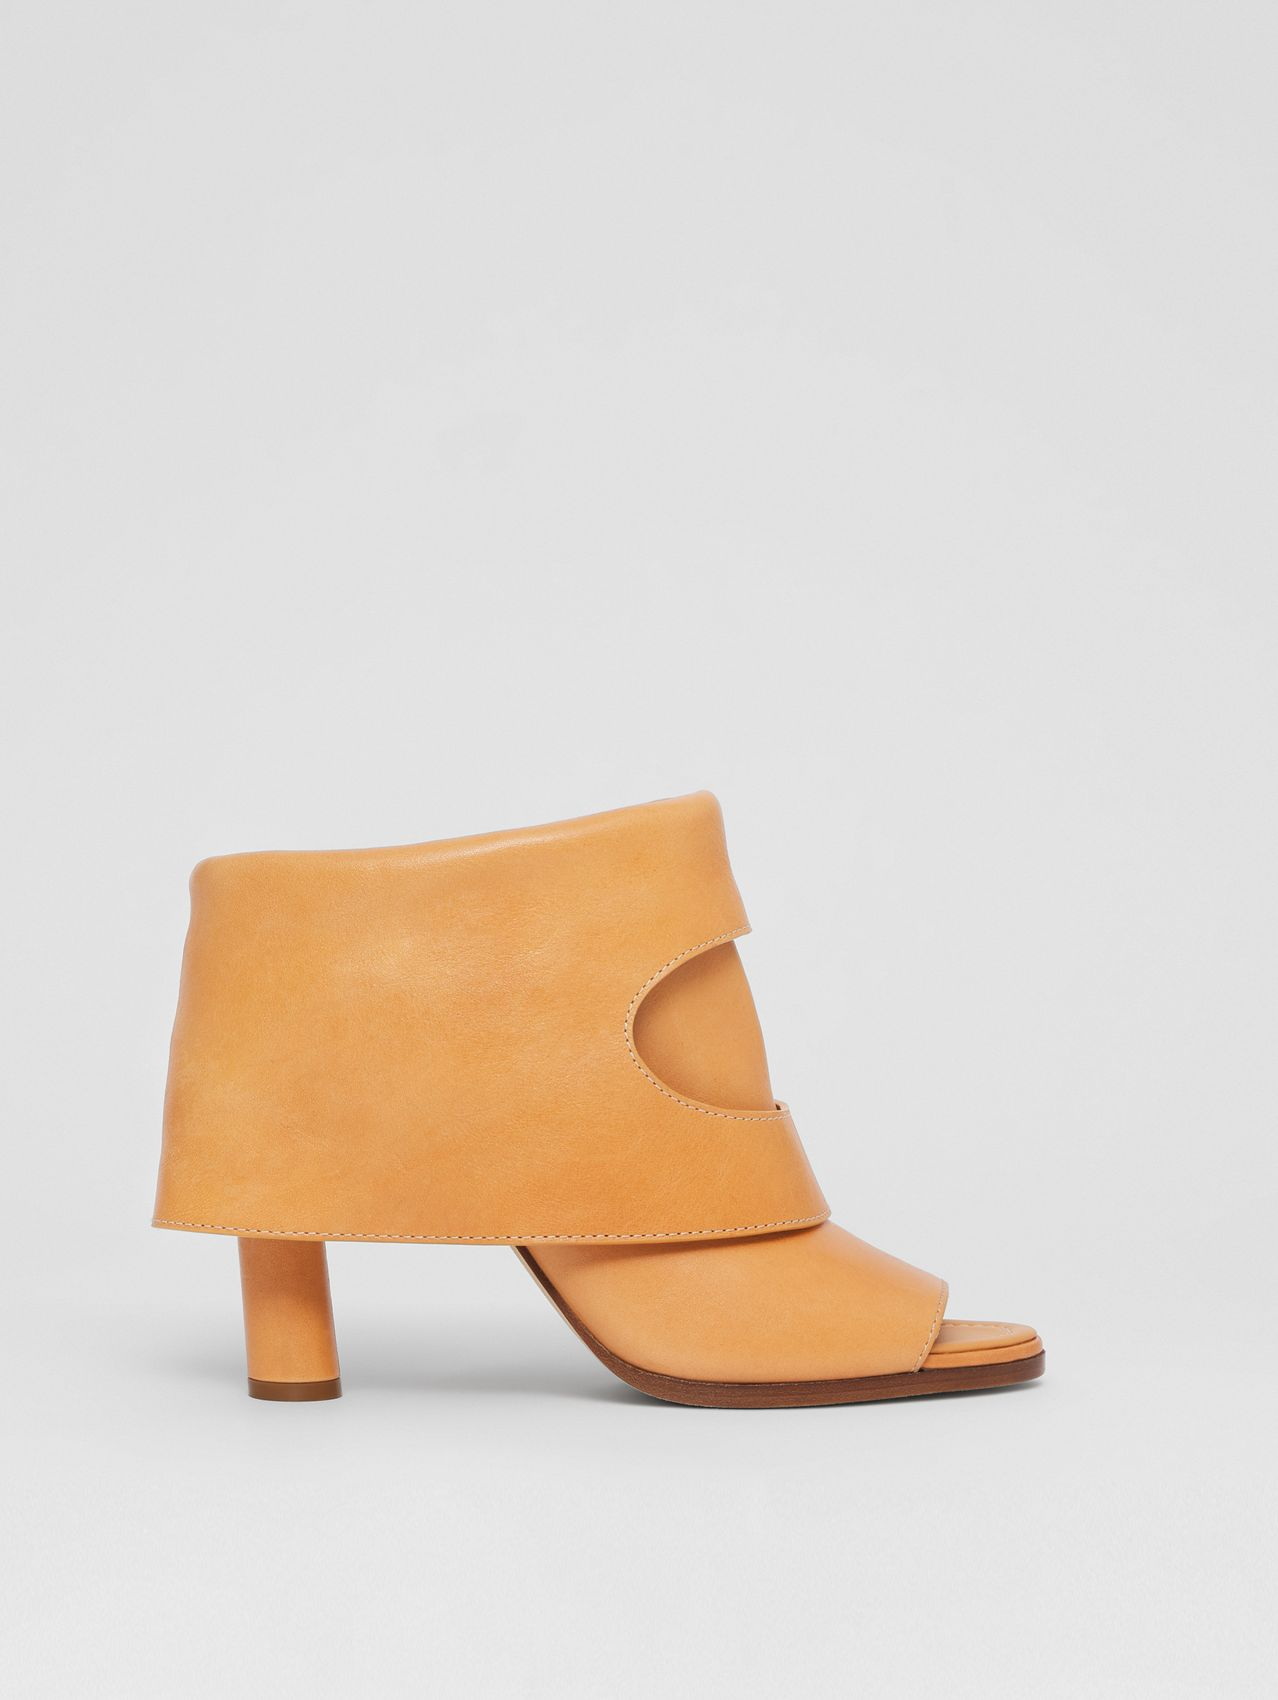 Porthole Detail Leather Peep-toe Boots in Light Chestnut